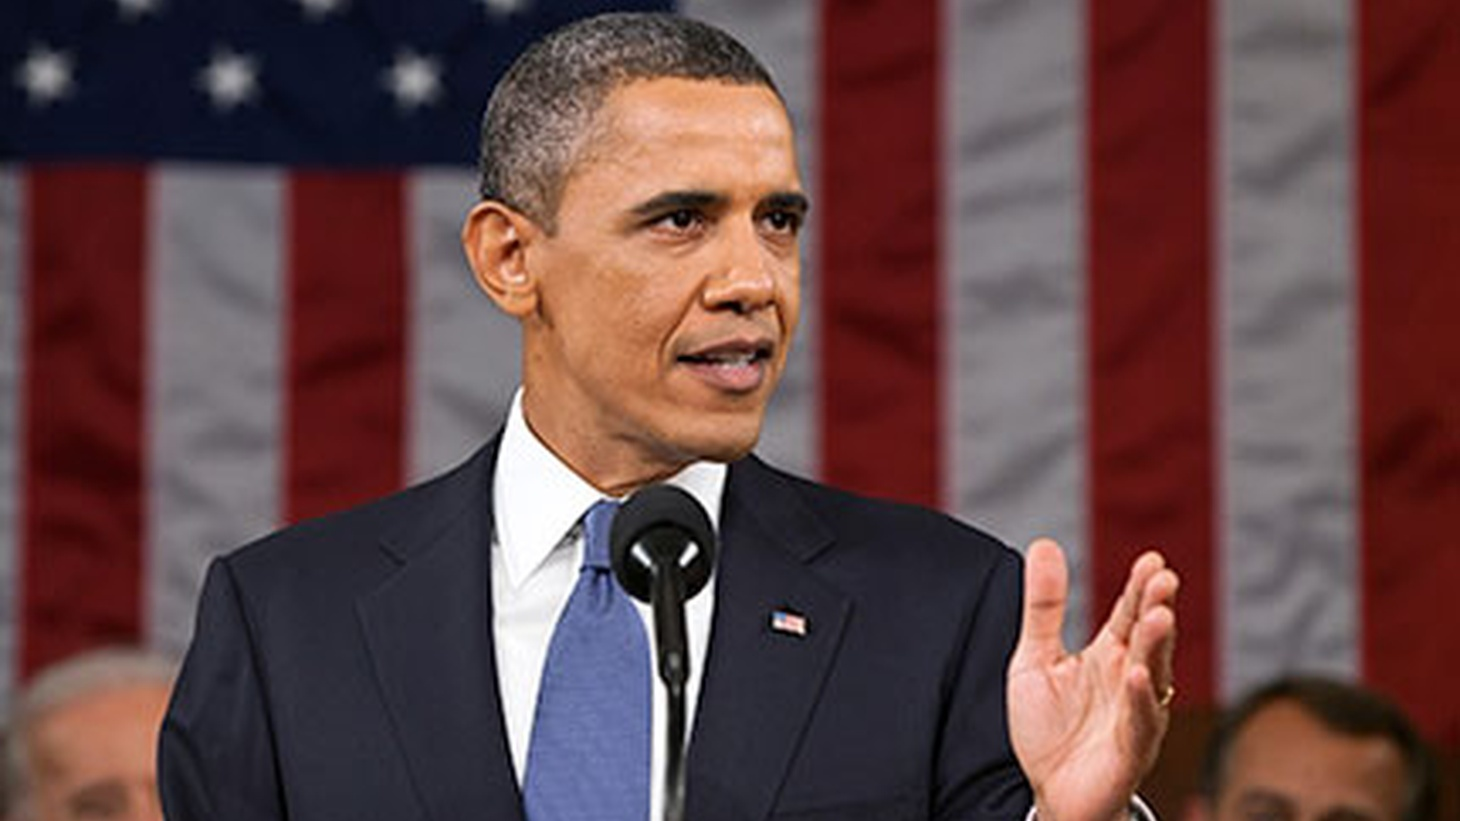 President Obama delivers his seventh State of the Union address on Tuesday, January 20. KCRW will broadcast the speech live at 6pm PST, followed by the GOP response and analysis by NPR.